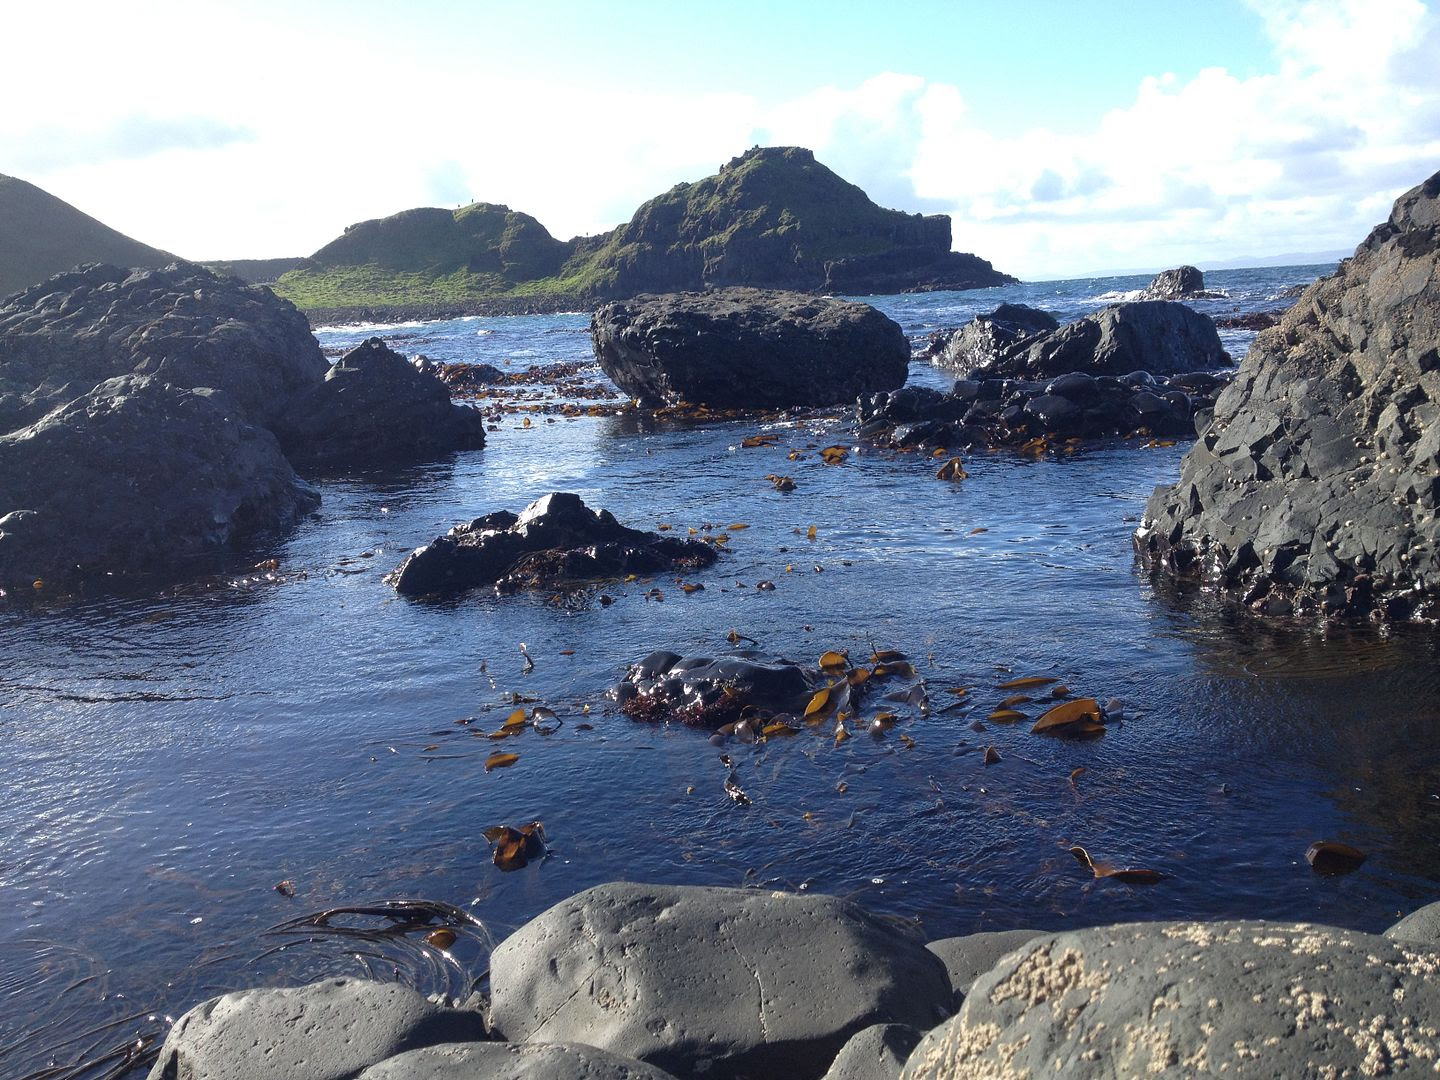 Giant's Causeway in Northern Ireland photo 2015-10-12 13.41.47_zpslutjtlrr.jpg